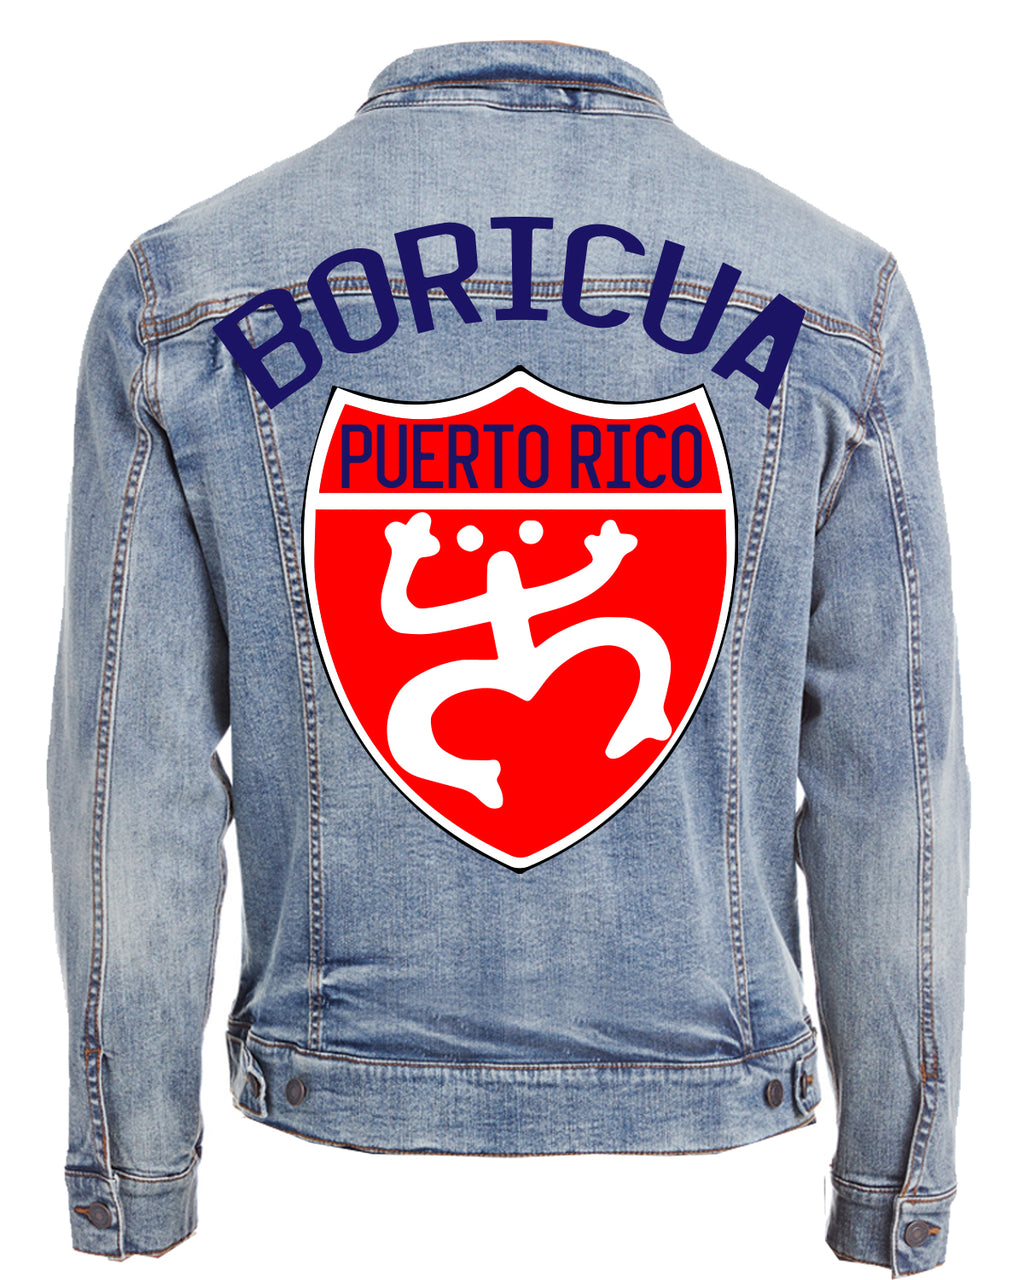 PUERTO RICO-DENIM JACKET (UNISEX)